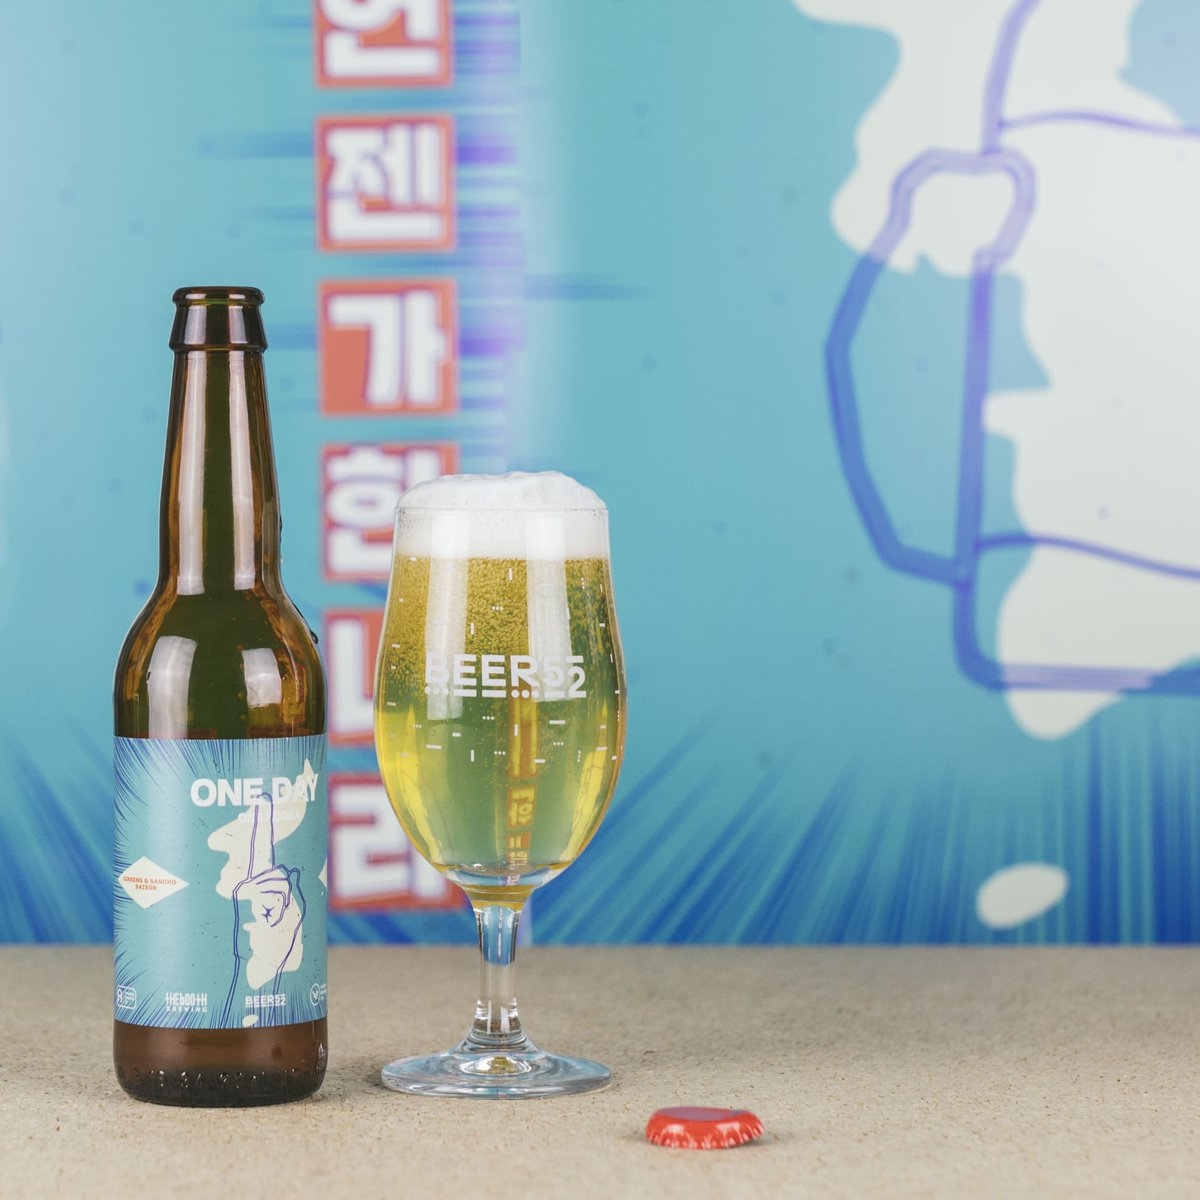 For our One Day, One Korea beer, we collaborated with South